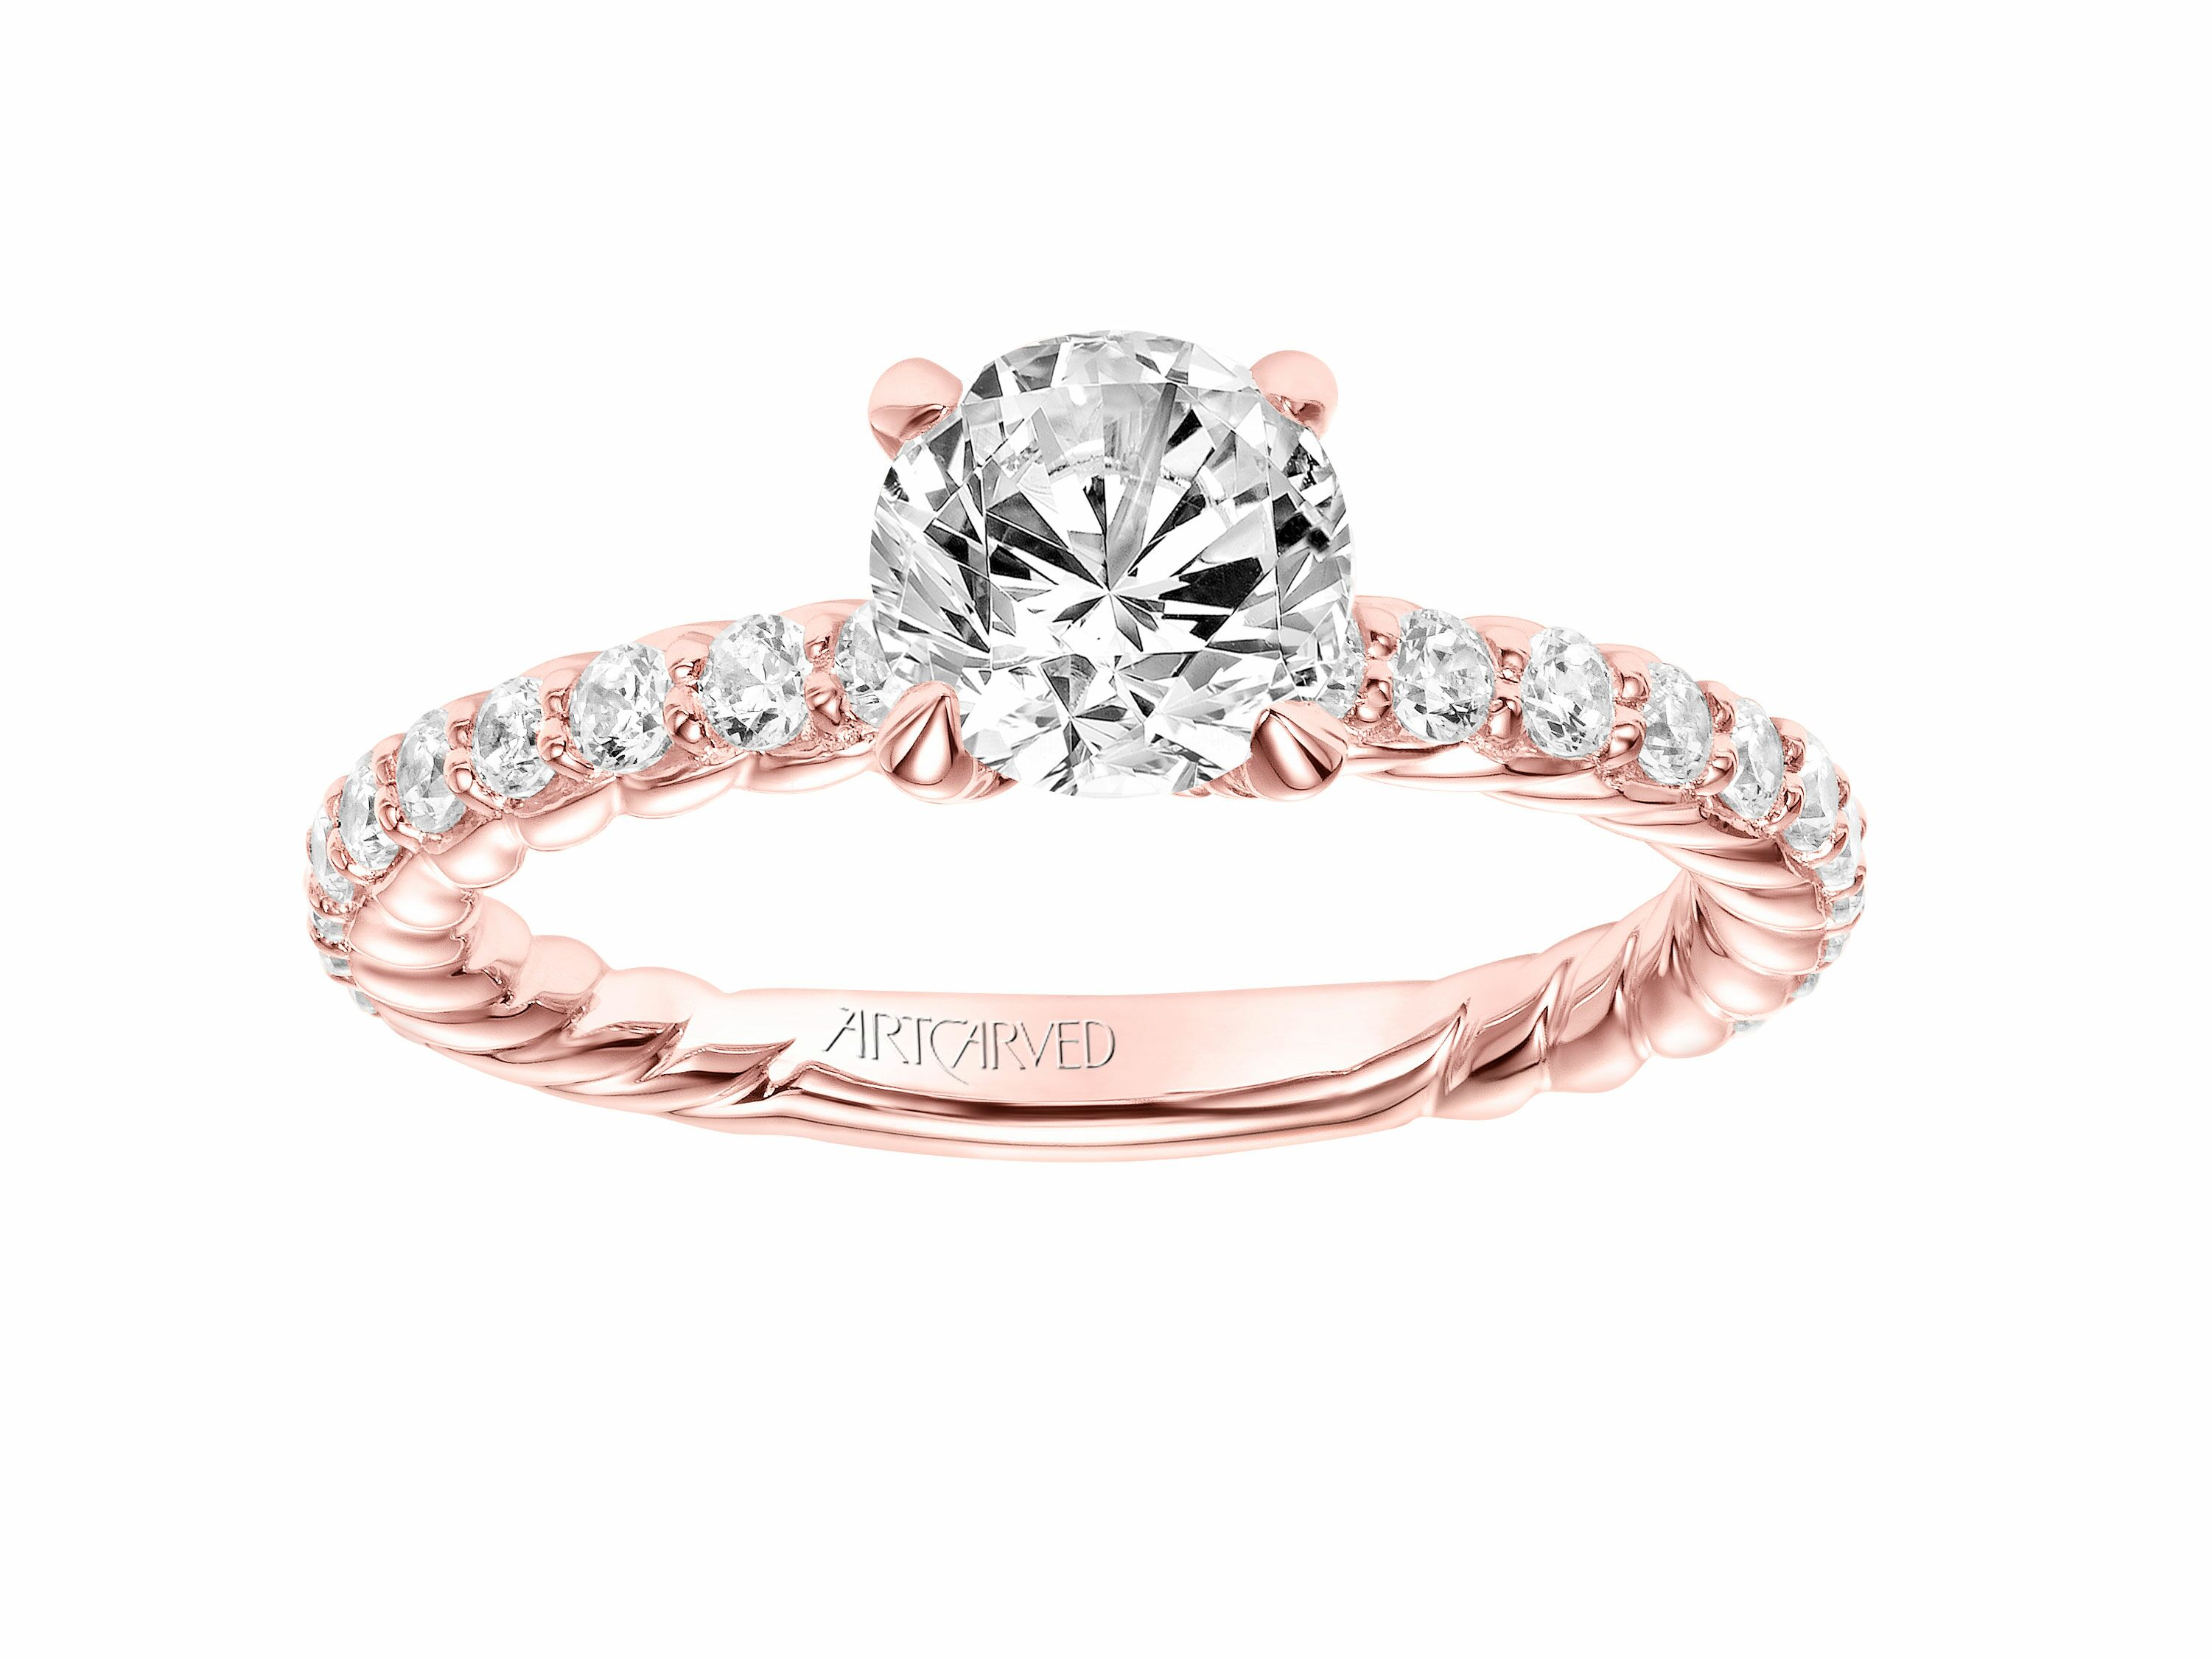 jewelers kassab category designers joe kay product ang rings engagement scott